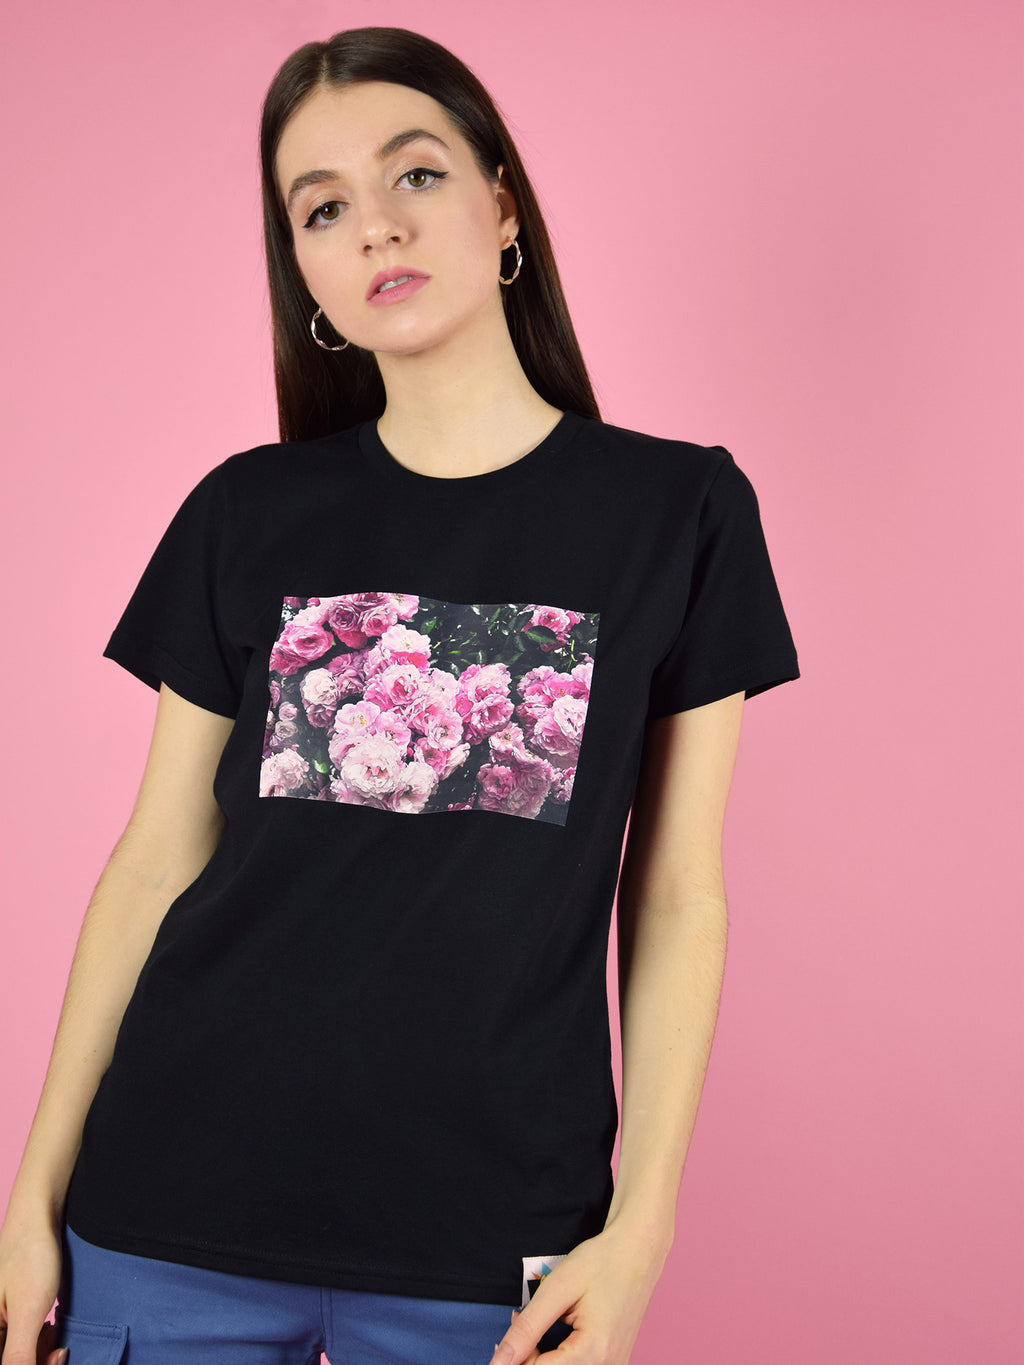 Blonde gone rogue's rose garden organic cotton tee in black is a soft touch, regular fit t-shirt with a nice, colourful block print of a rose garden.